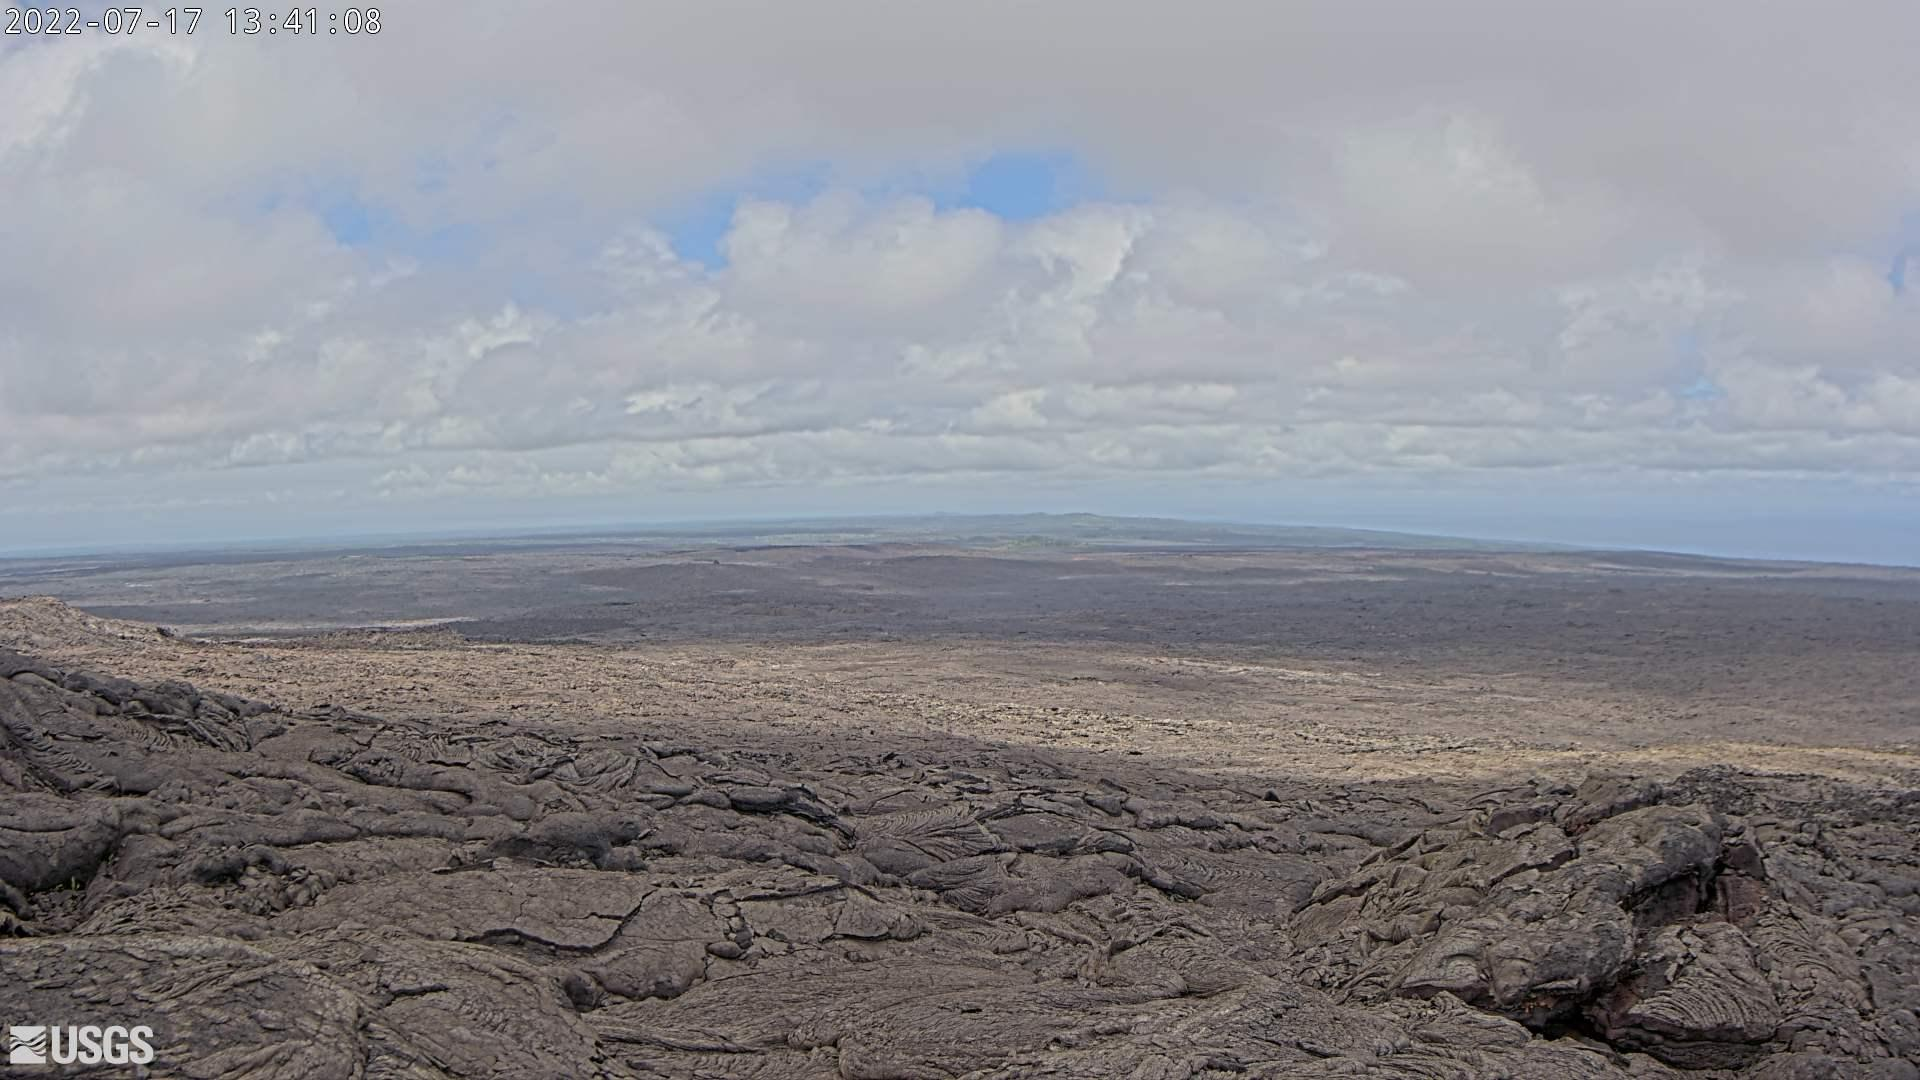 Webcam Kapaahu: Kīlauea volcano, east rift zone